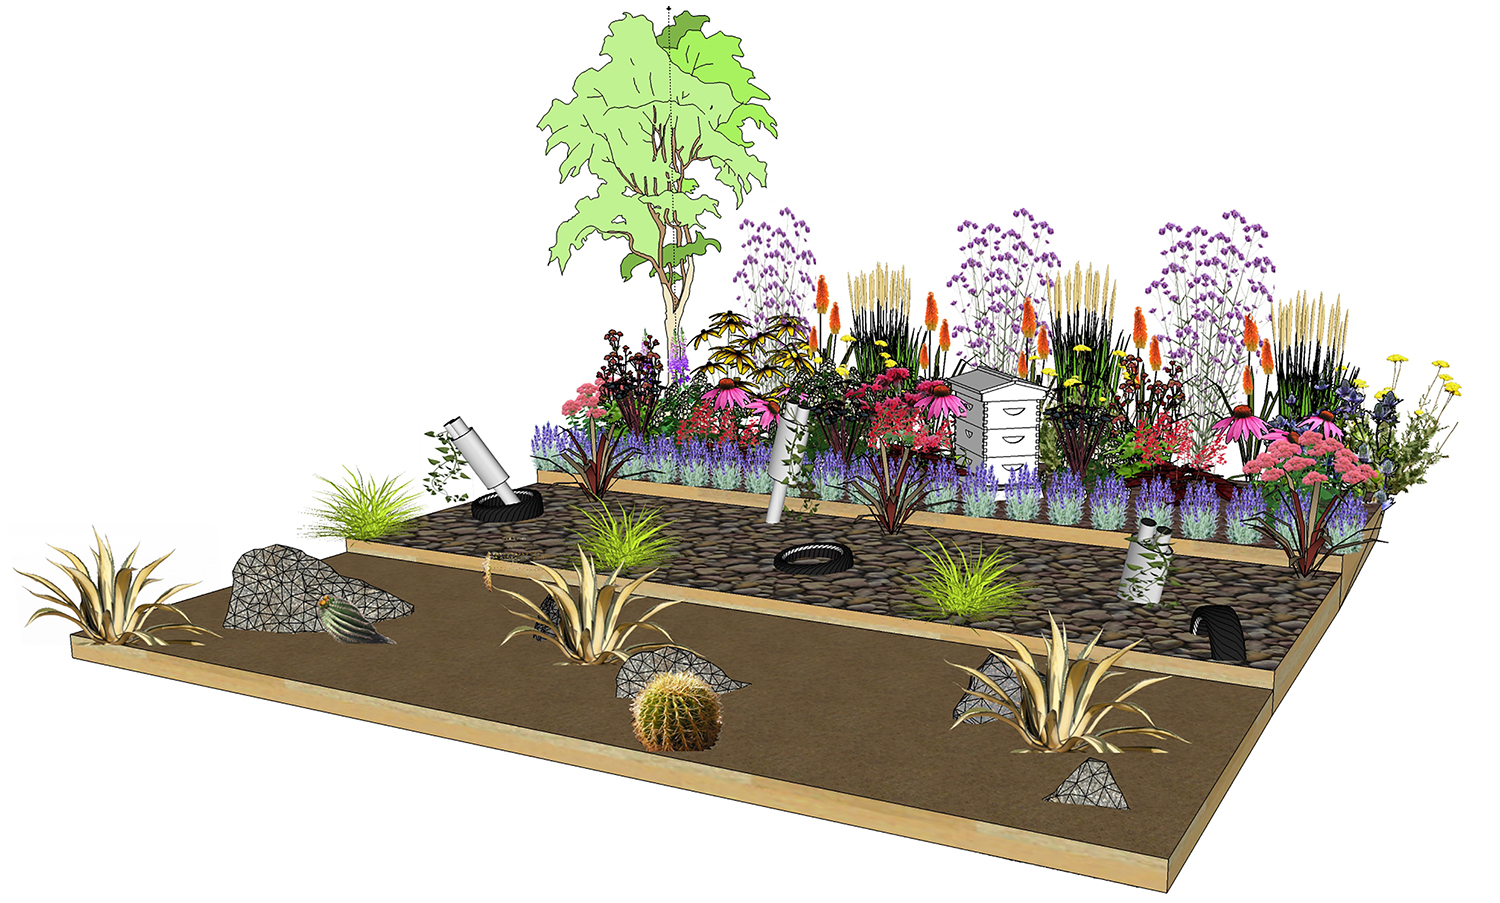 Shrewsbury flower show hornby garden designs garden for Garden design ideas in uk